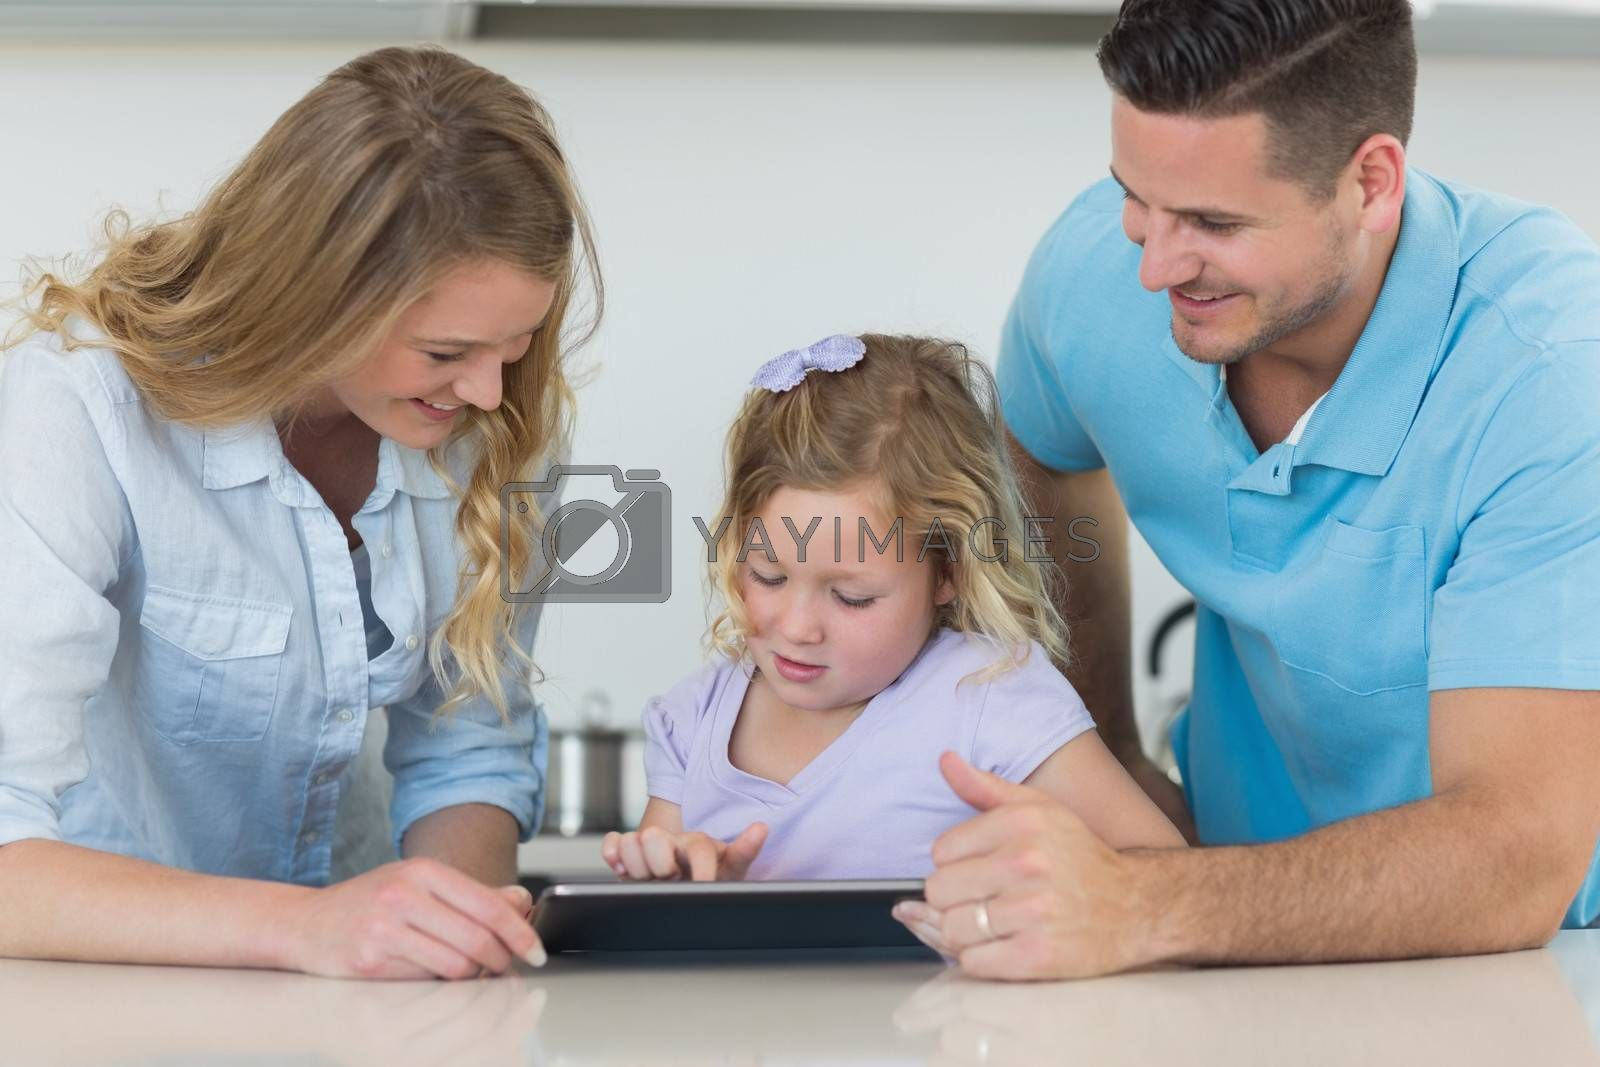 Family using tablet PC at table by Wavebreakmedia